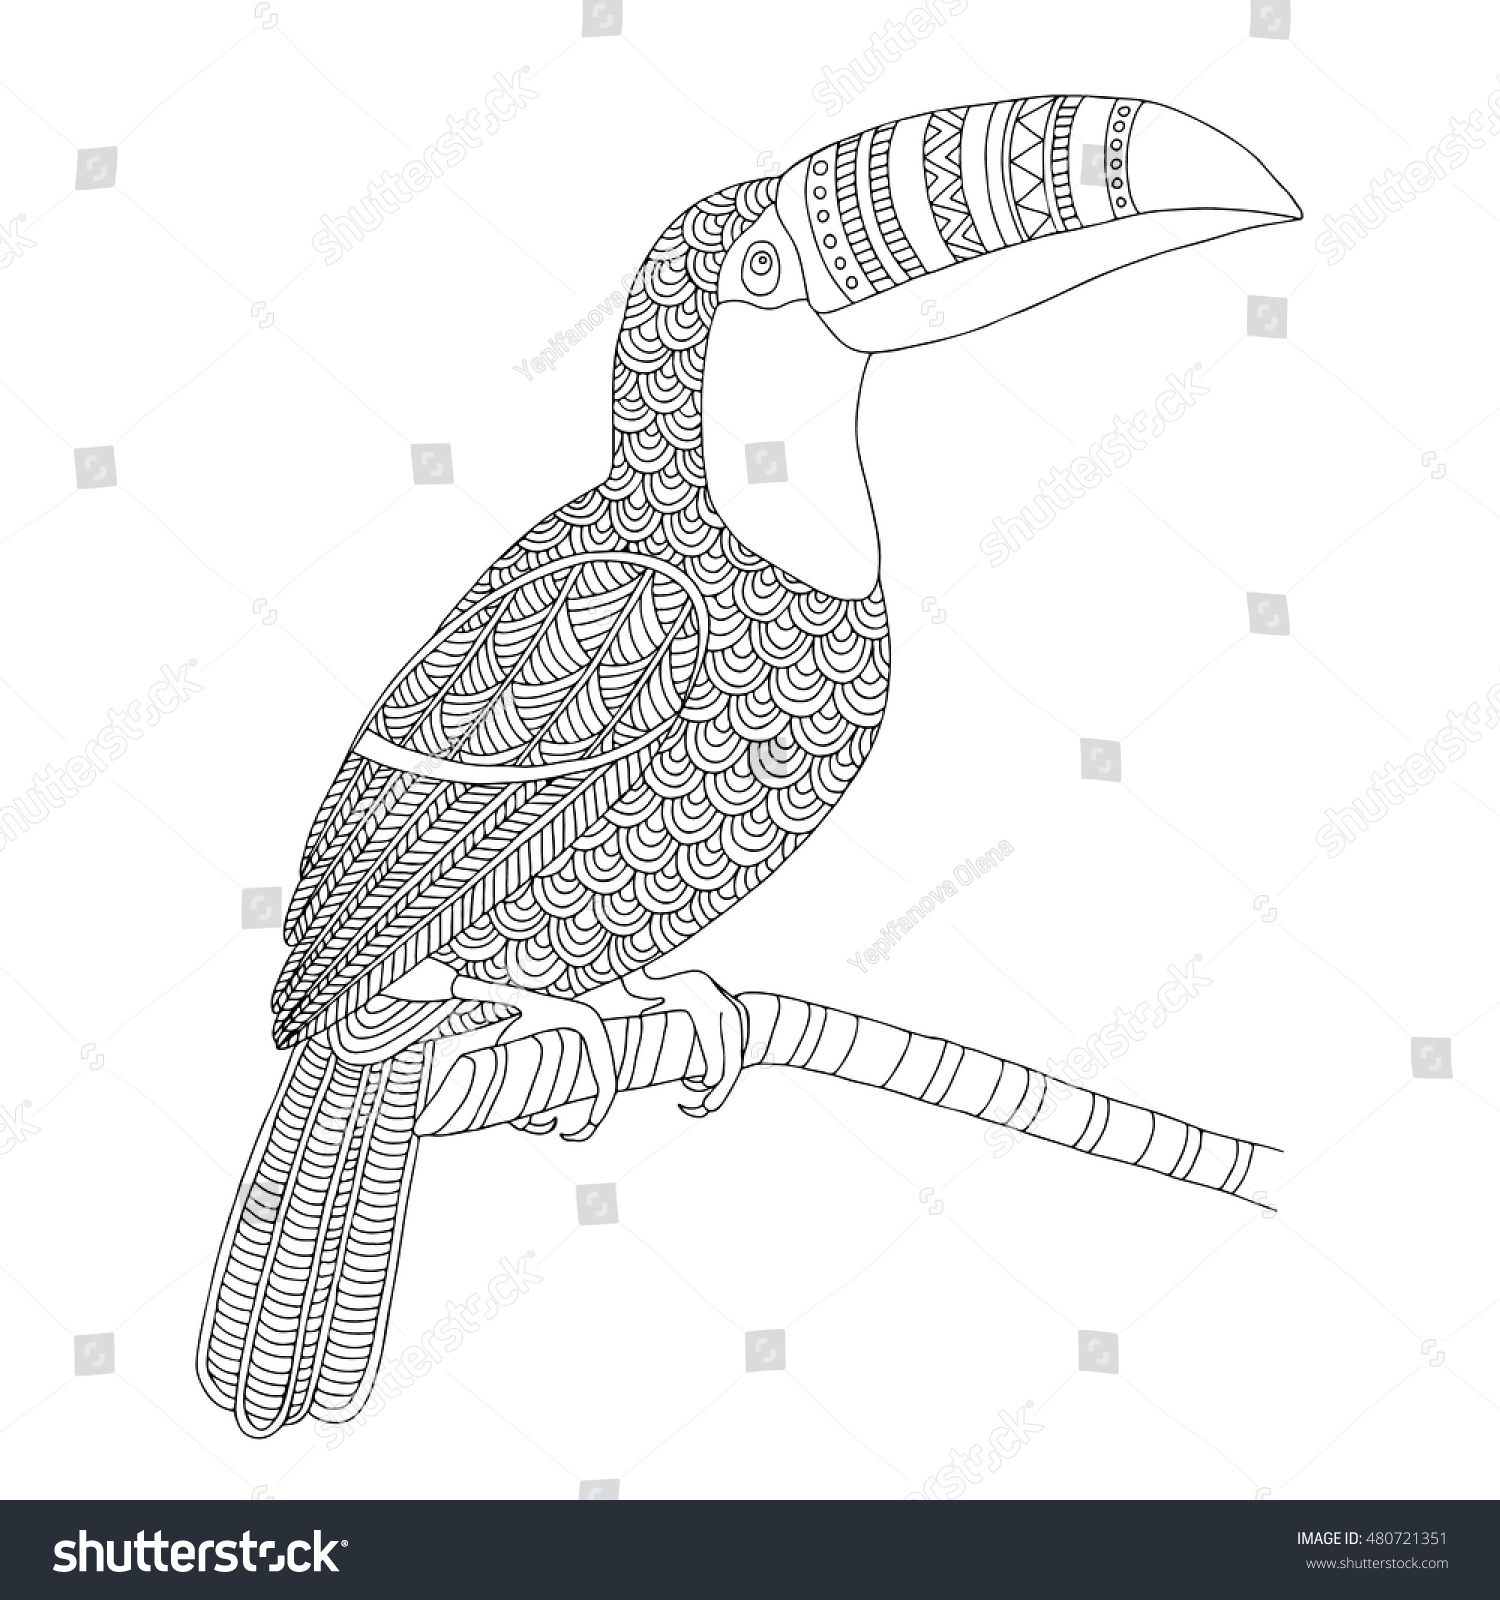 Vector Hand Drawn Toucan Bird Tropical Illustration For Adult Coloring Book Freehand Sketch